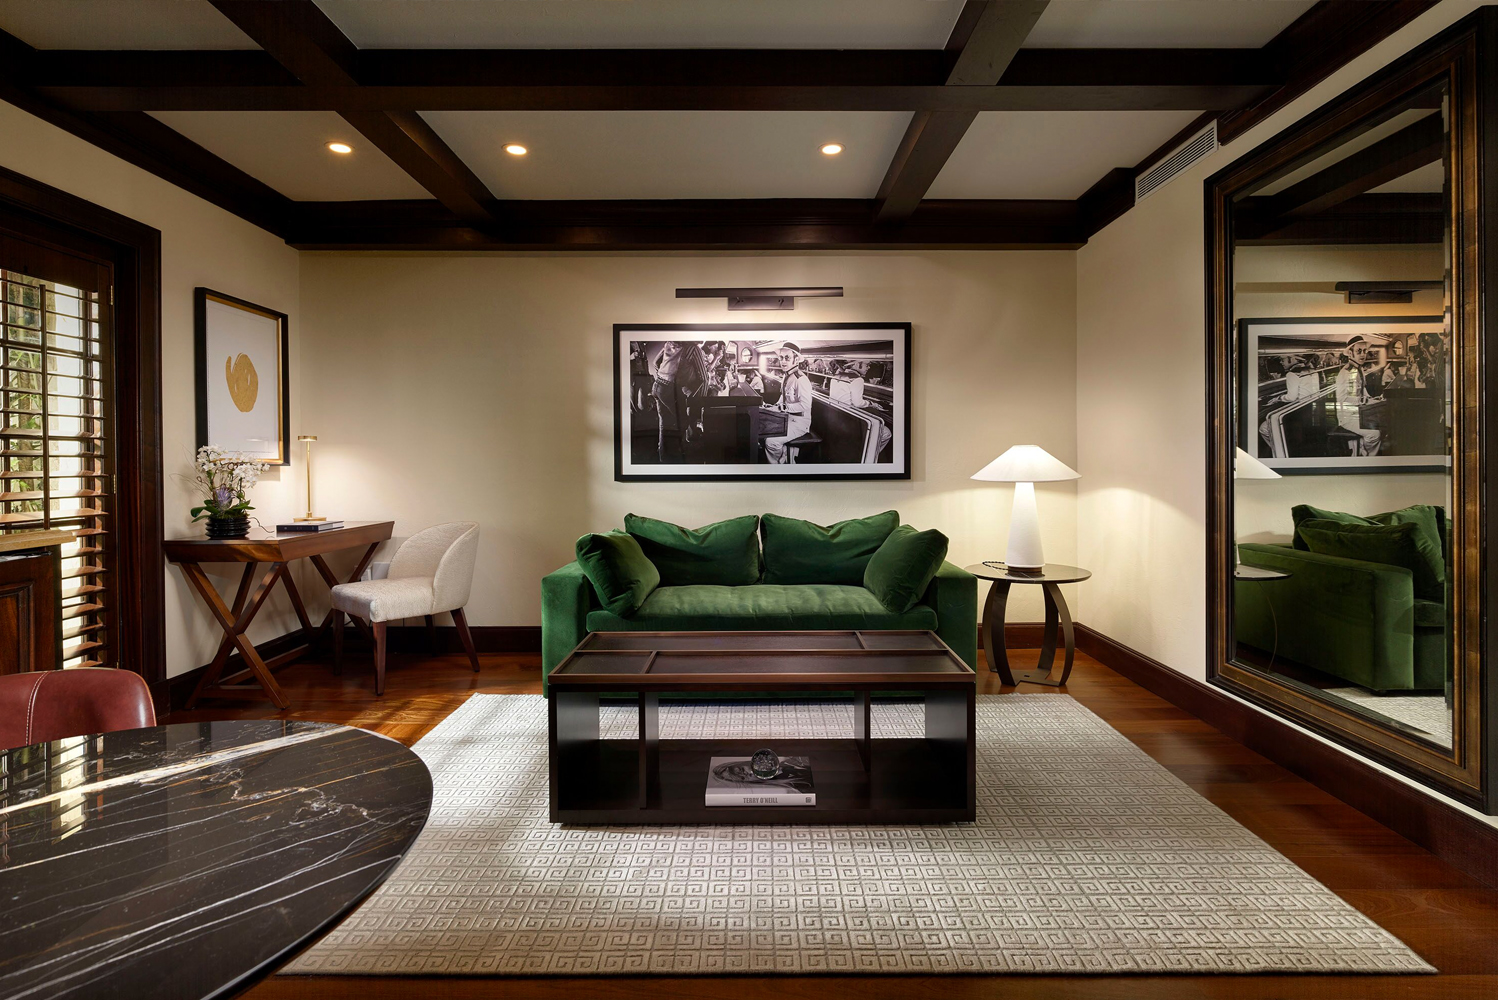 The Brazilian Court Hotel in Palm Beach, Fla., unveiled updates to its studios, one-, two- and three-bedroom suites.